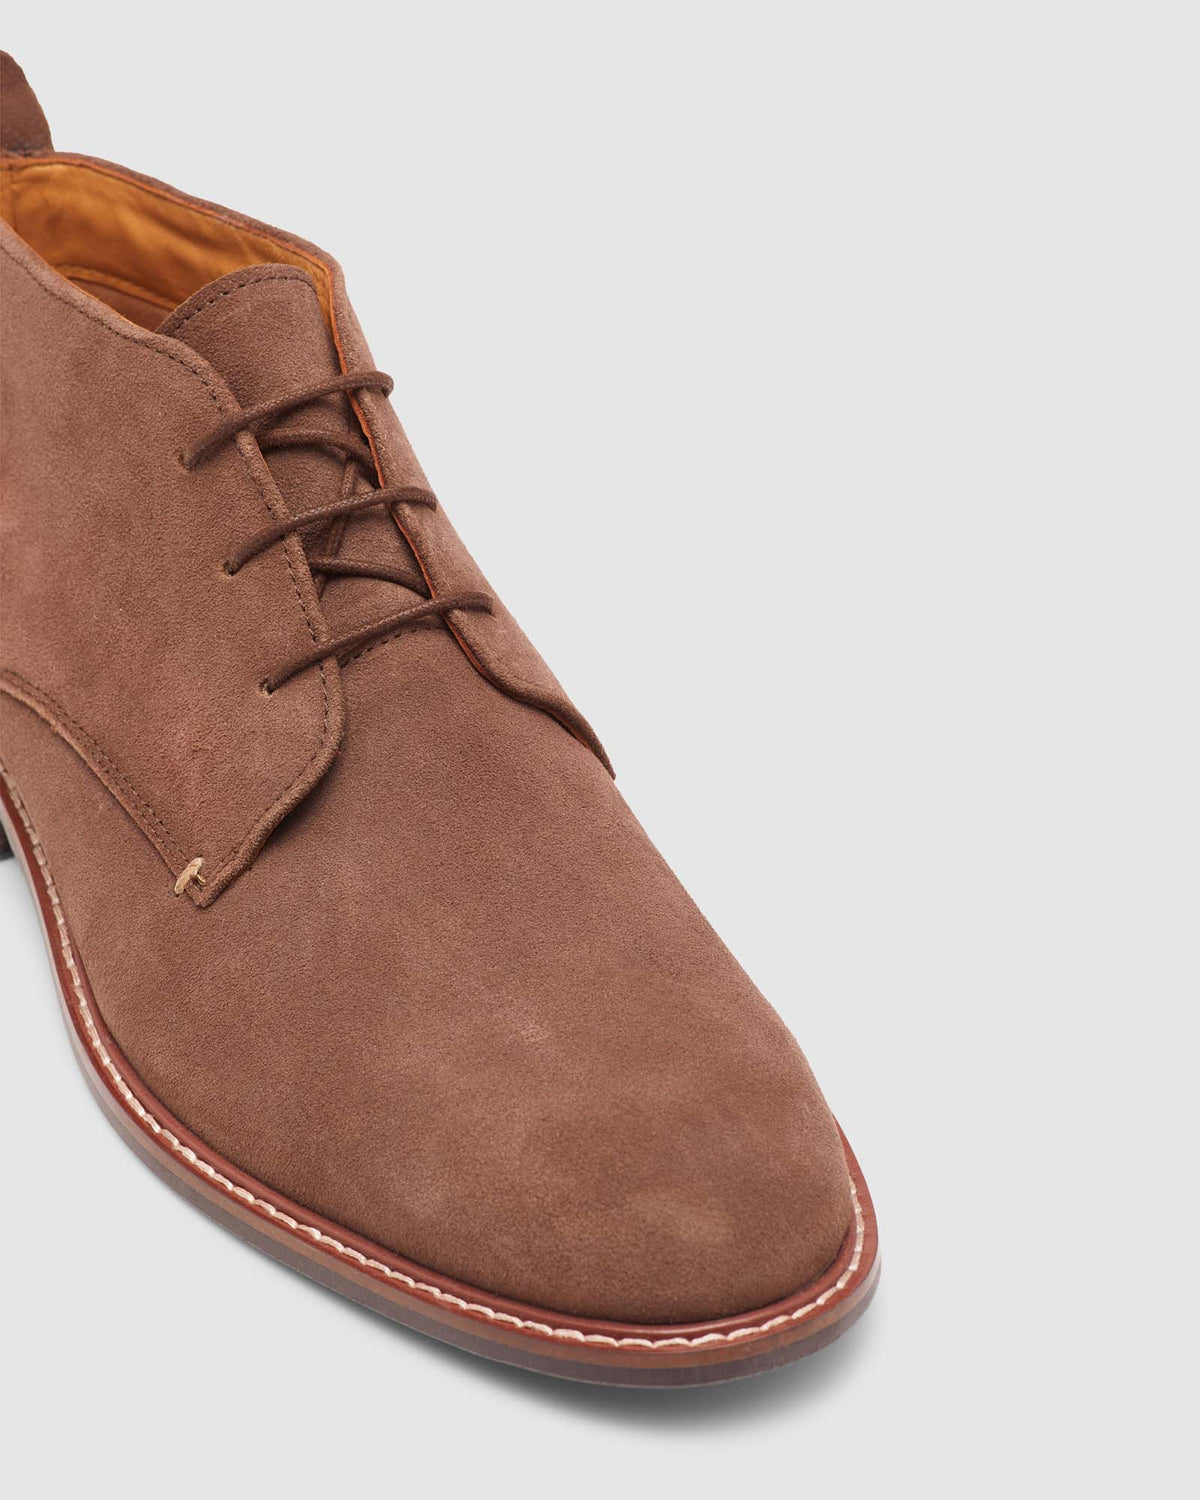 KAIDAN SUEDE LEATHER BOOT BROWN